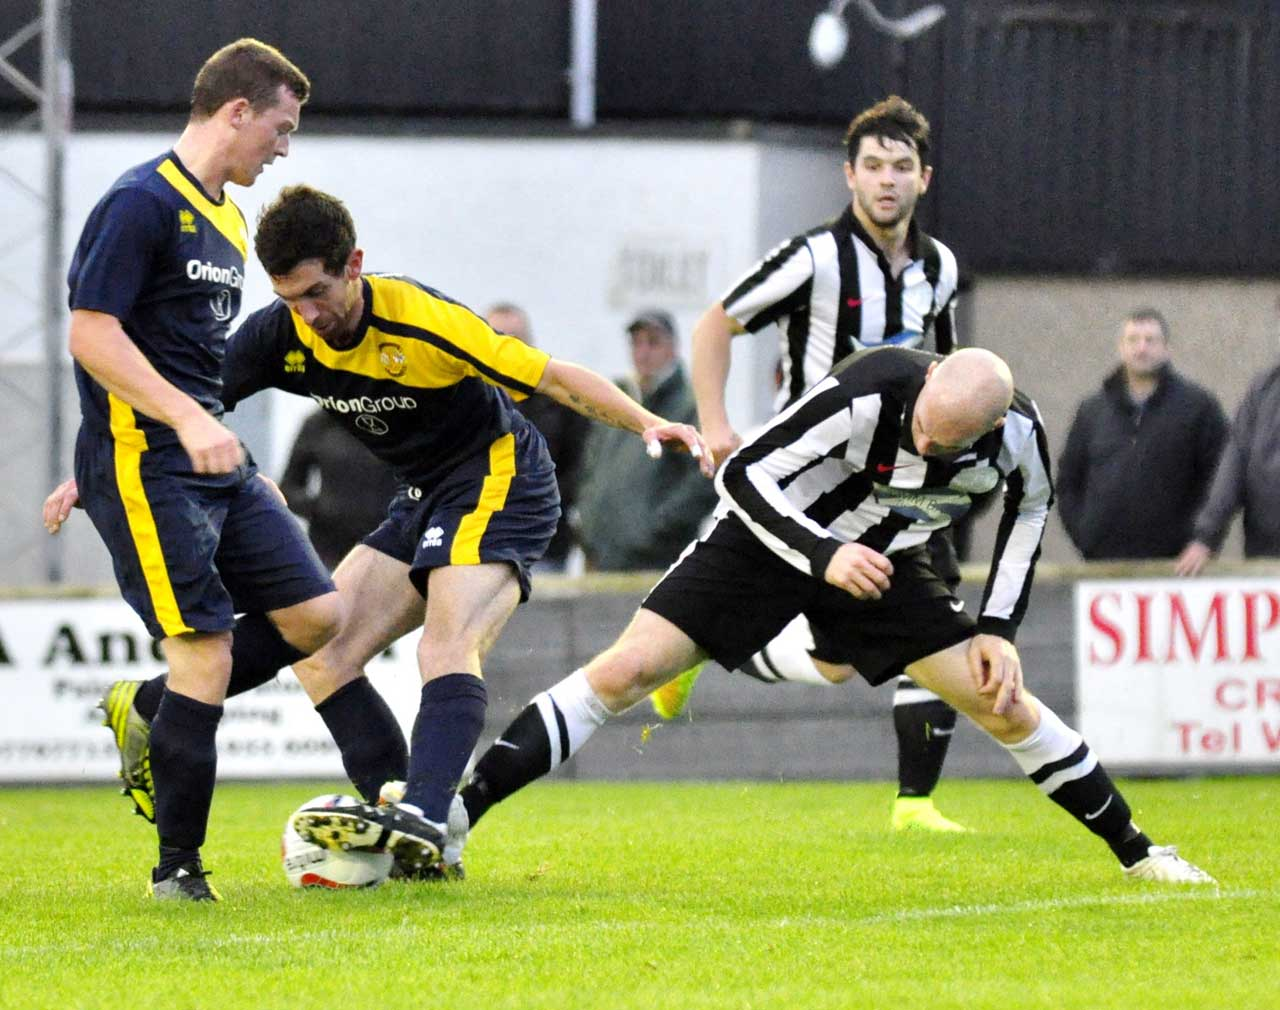 Photo: Wick Academy 2 Clachnacuddin 0